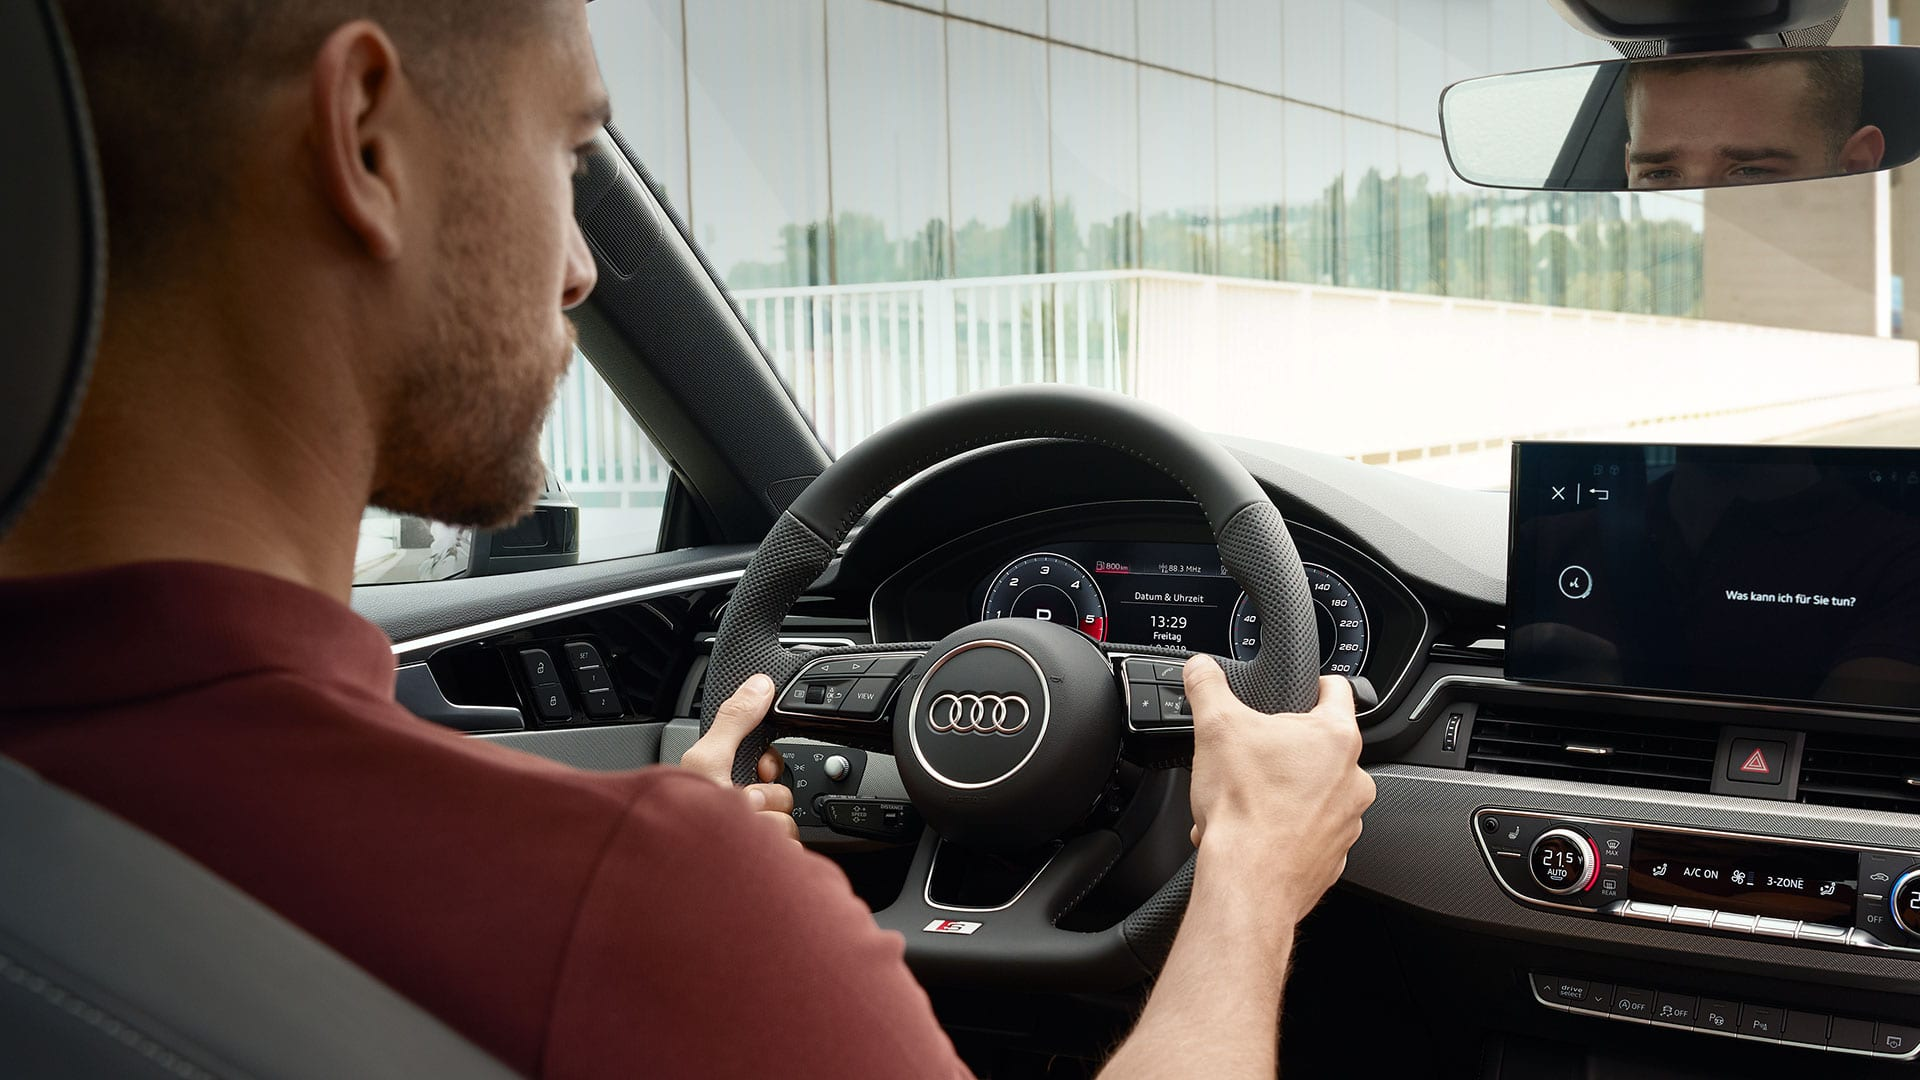 Audi A5 Coupé, Audi virtual cockpit -mittaristo